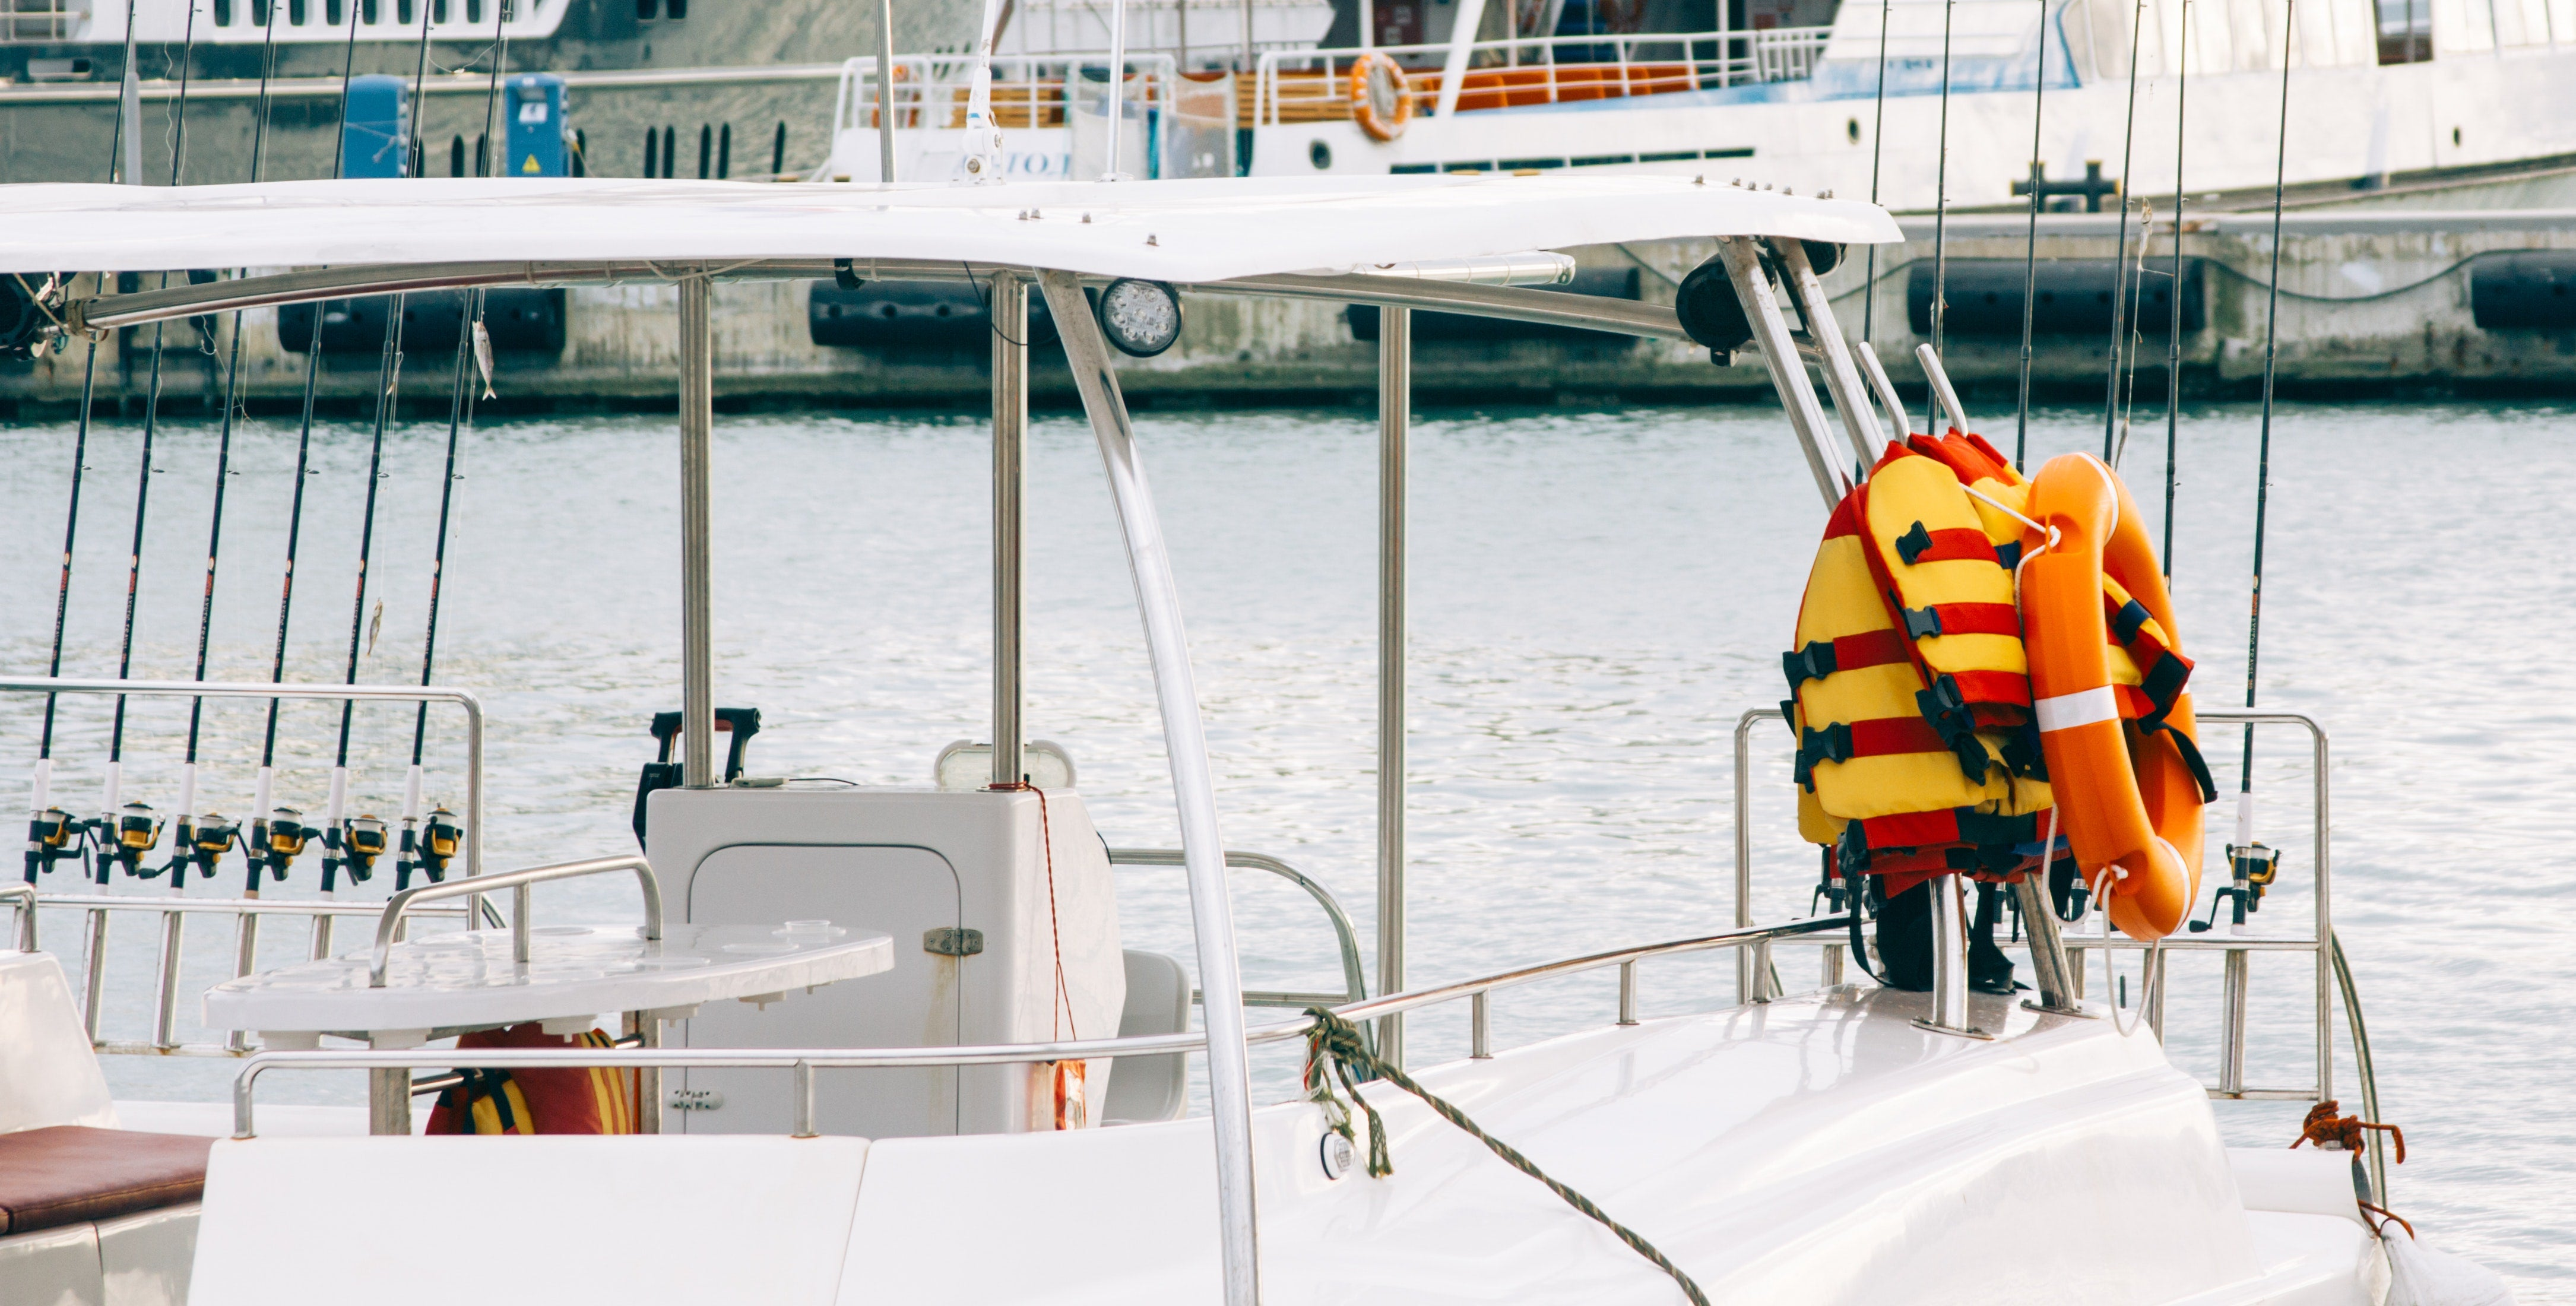 Boating Essentials: What To Have On Your Boat